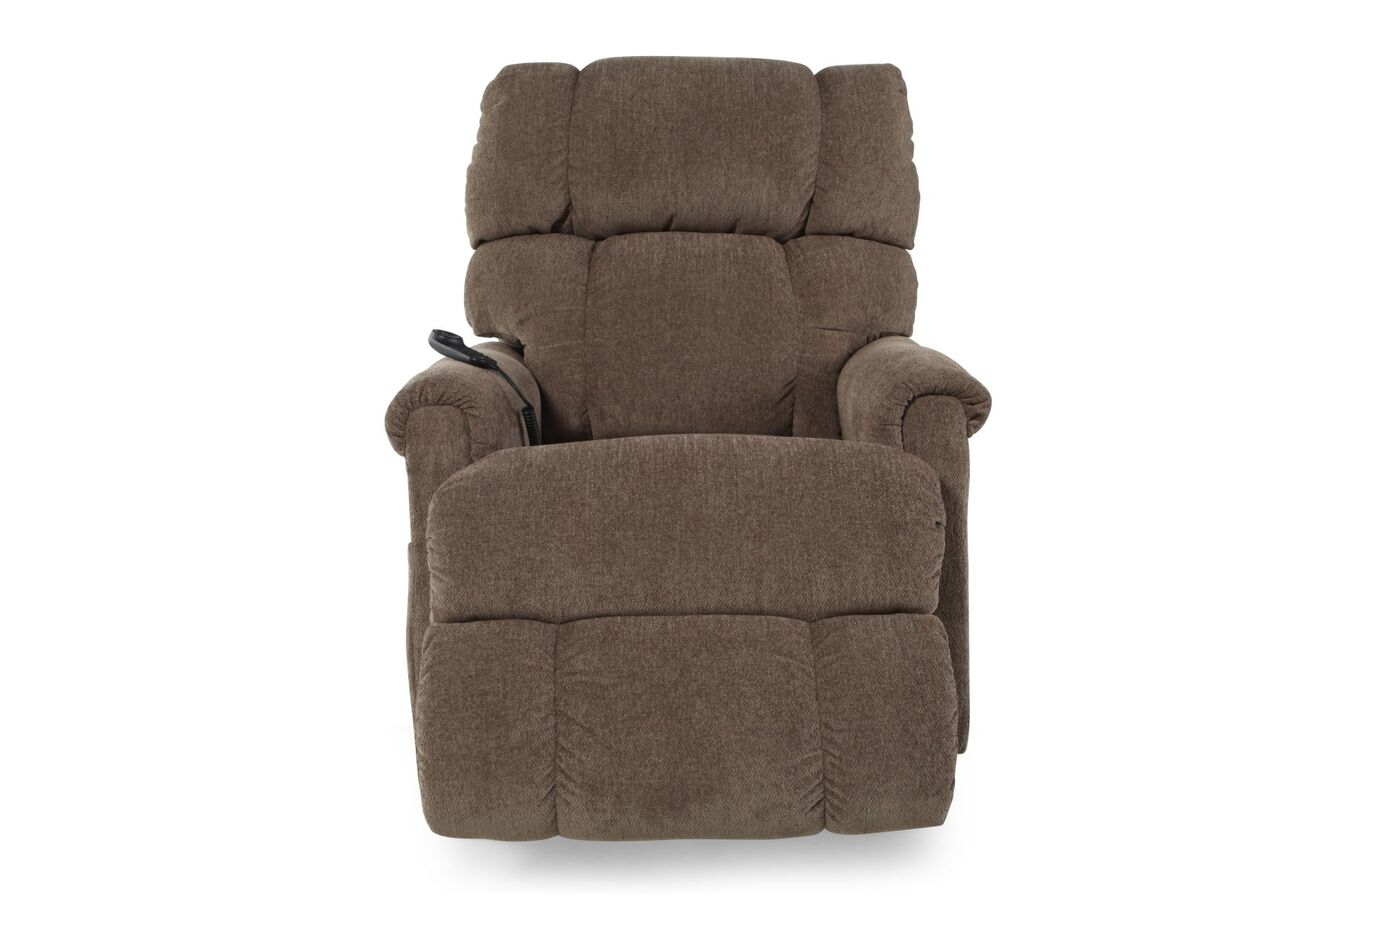 Green La Z Boy Lift Chair Recliner With Heat And Massage